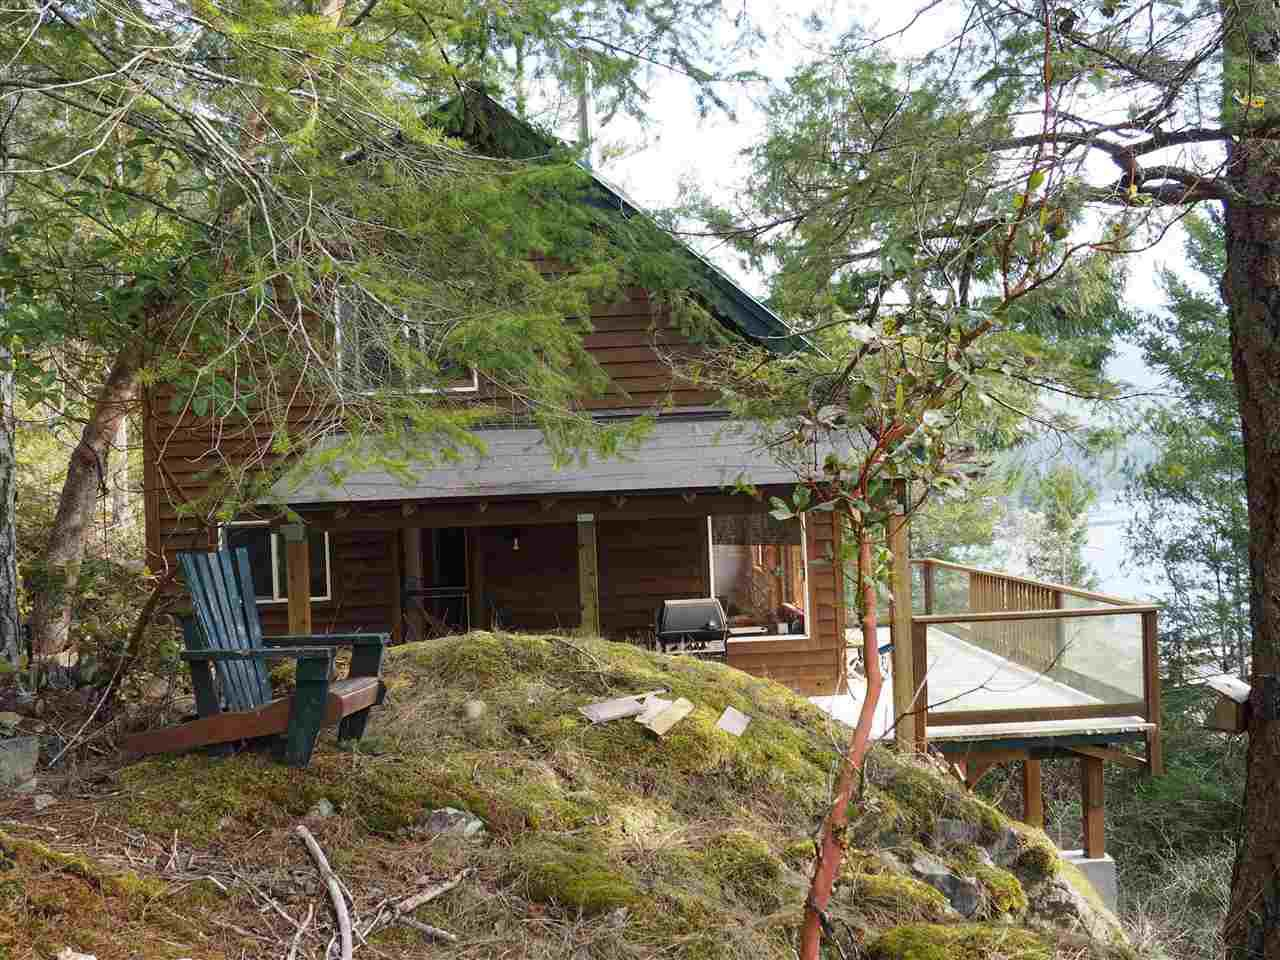 Cabin perched on the moss-covered bluff.